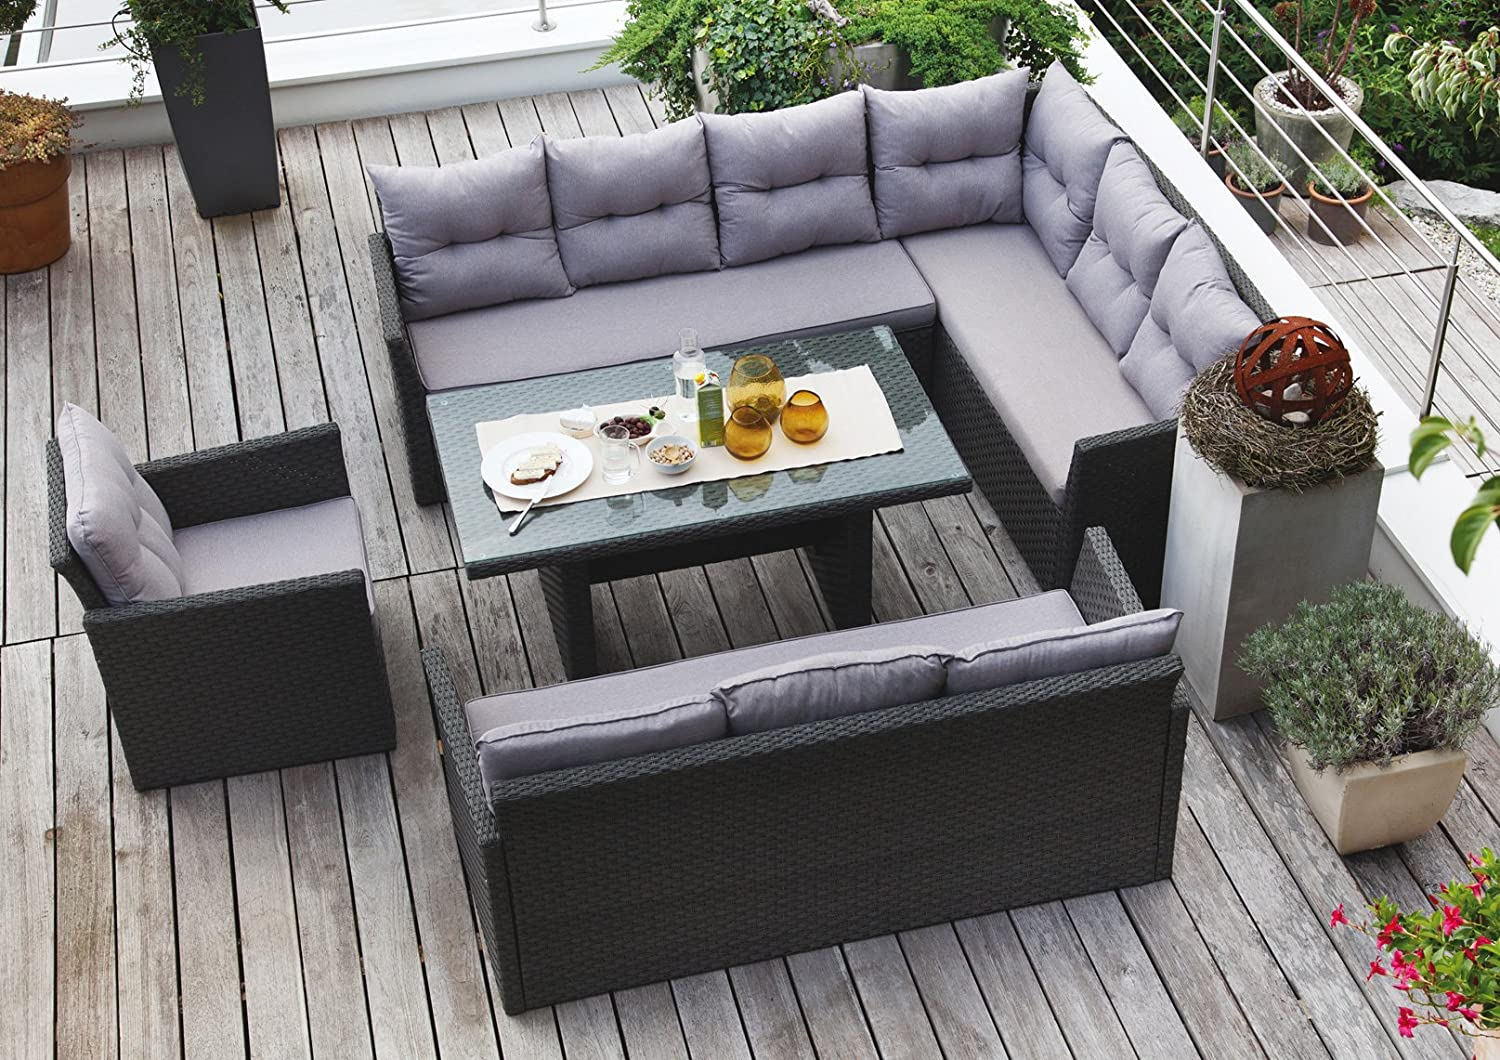 edle dining lounge garten sitzgruppe hampton rattan garnitur mit hohem tisch g nstig online kaufen. Black Bedroom Furniture Sets. Home Design Ideas